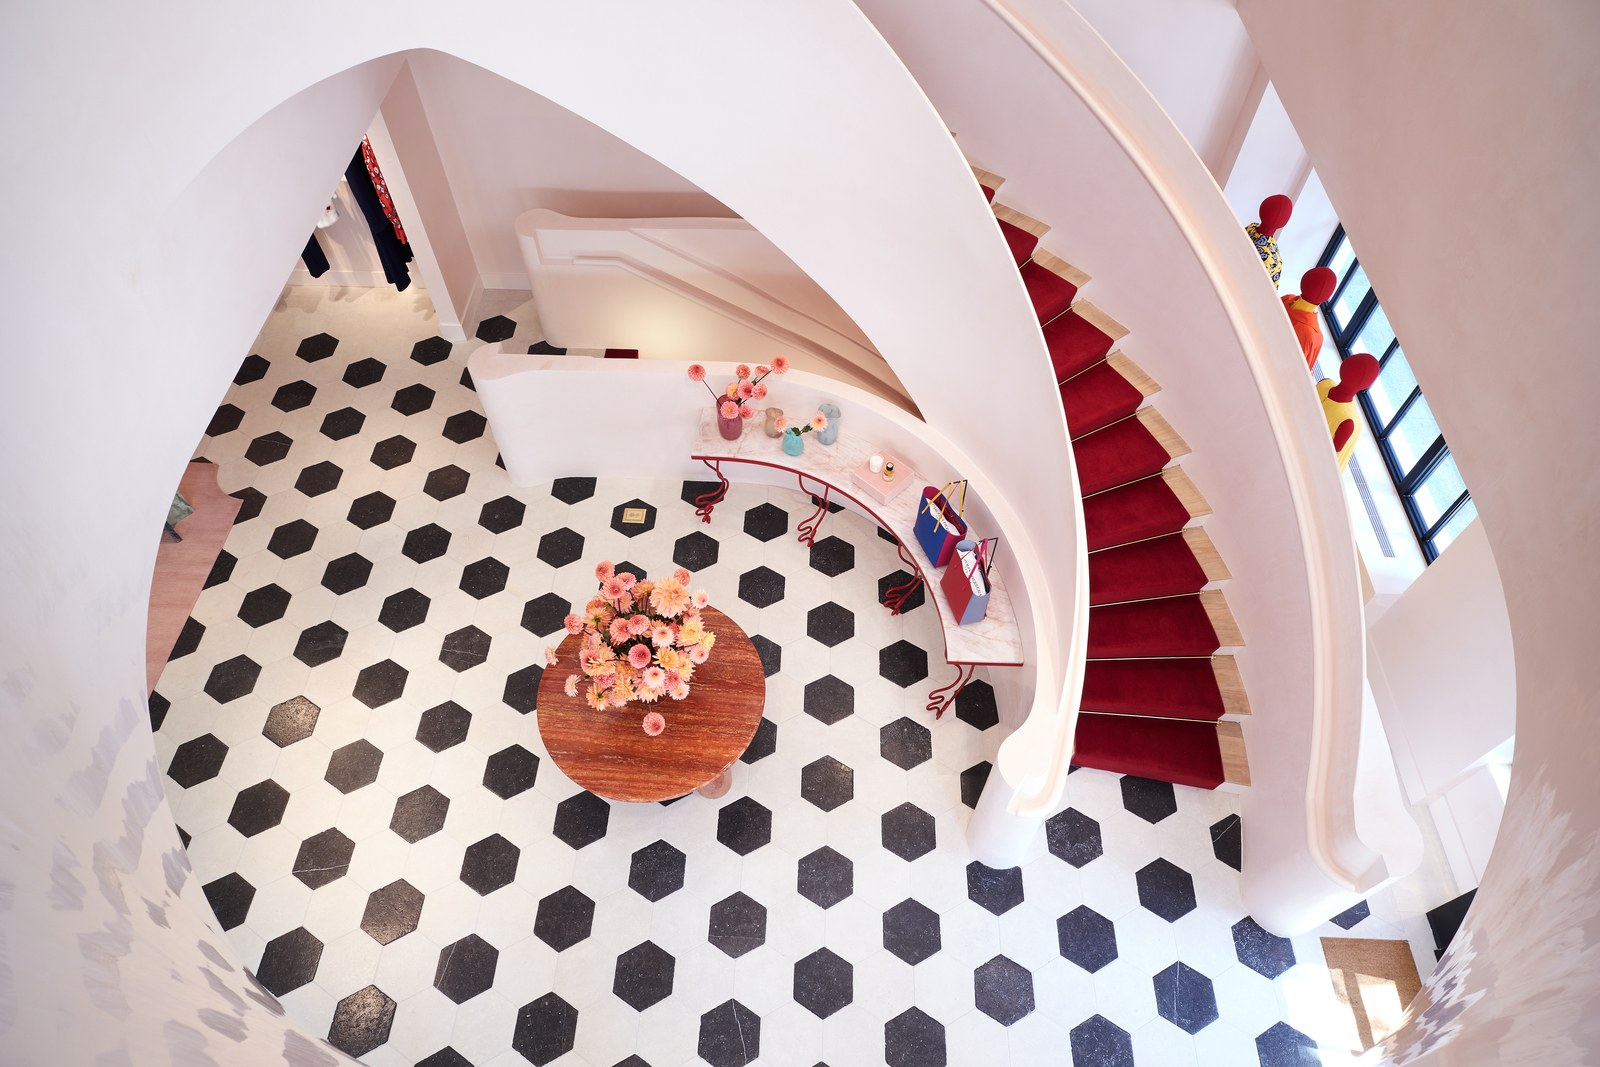 Photograph by Björn Wallander for Architectural Digest